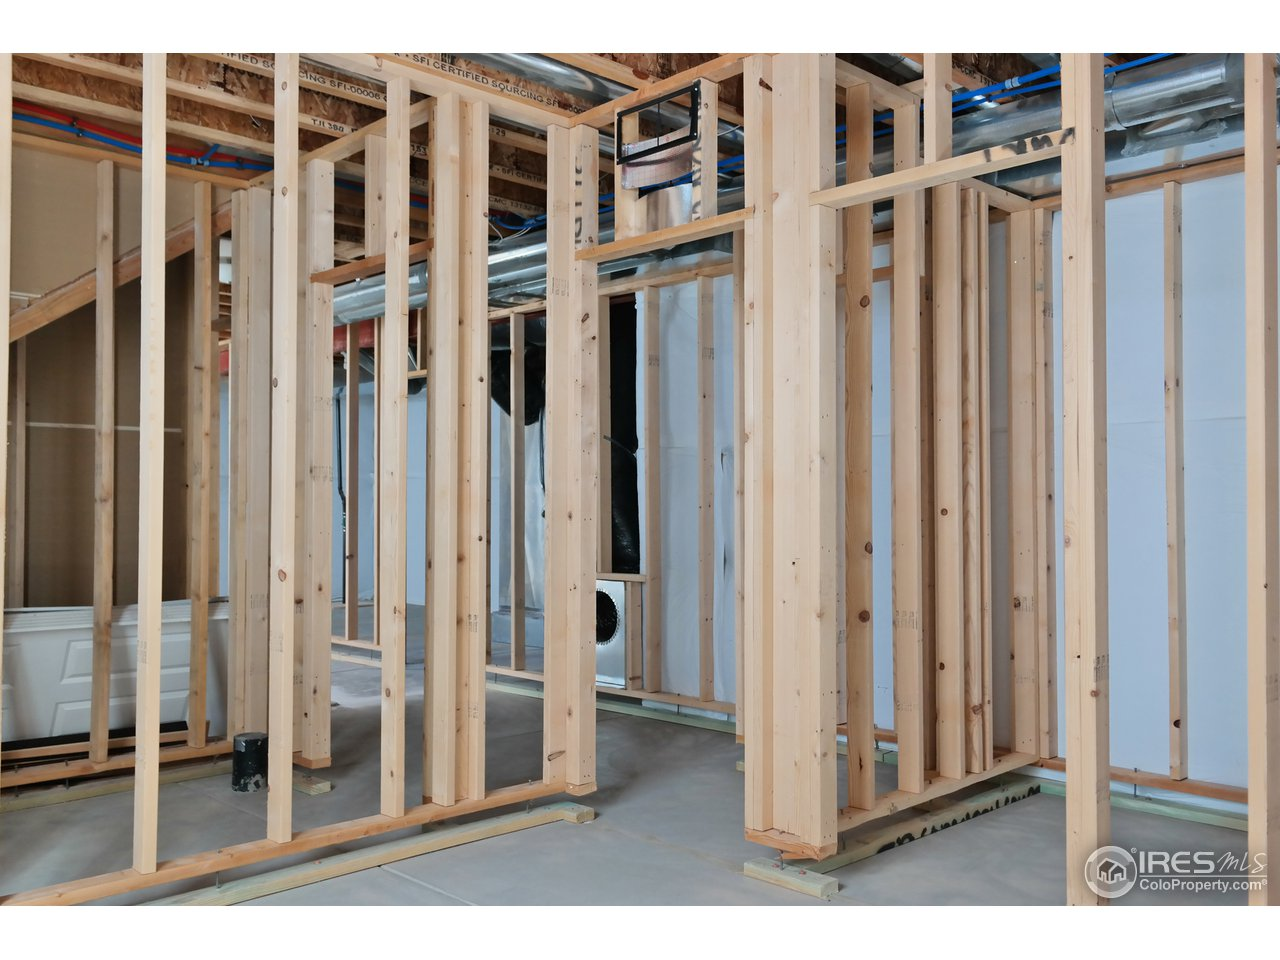 Stud Walls & HVAC Ducts ~ Reaty to Finish